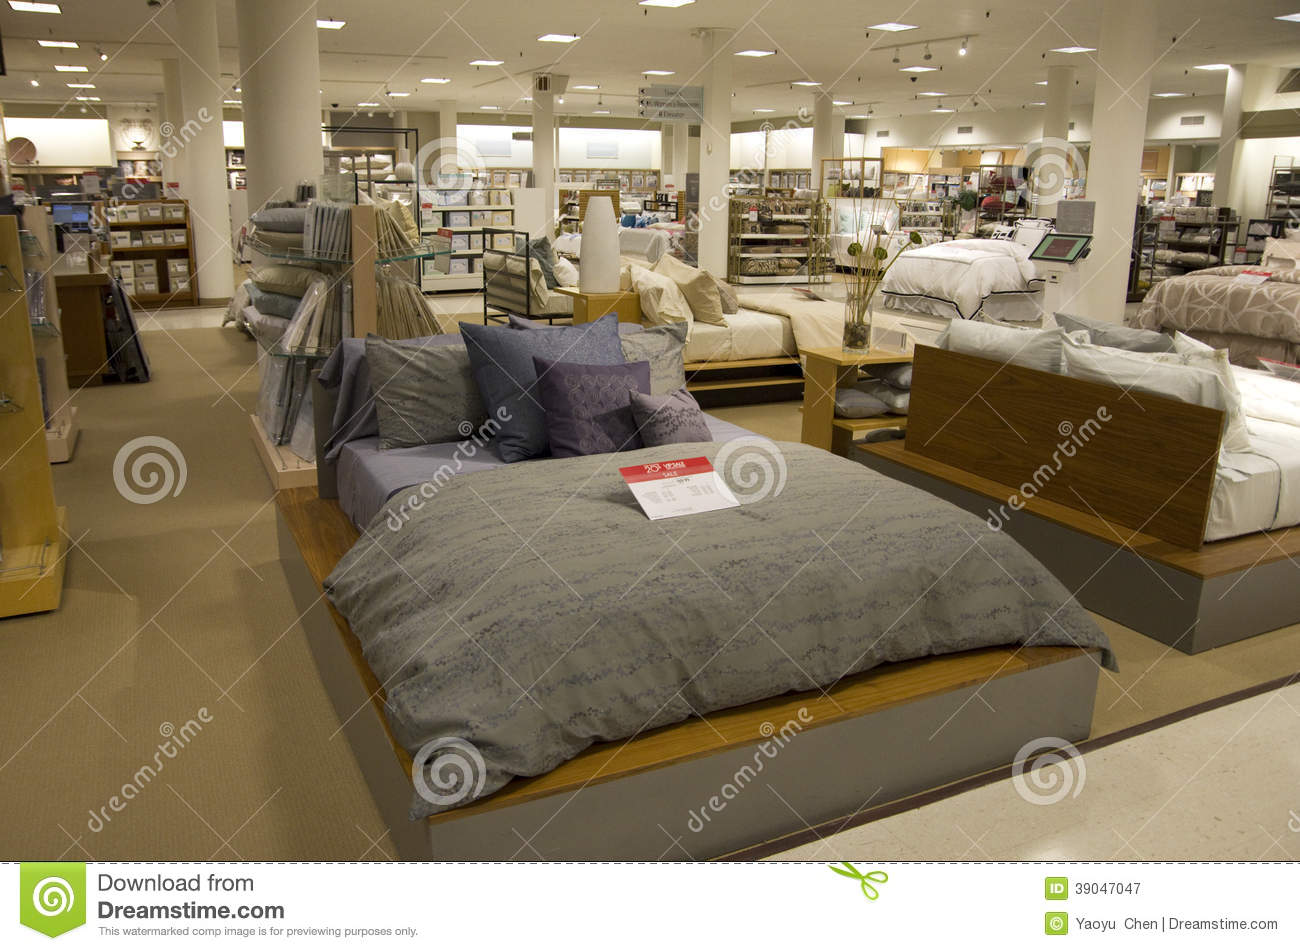 Royalty Free Stock Photo. Bedding And Home Goods Department Store Stock Photo   Image  39047047